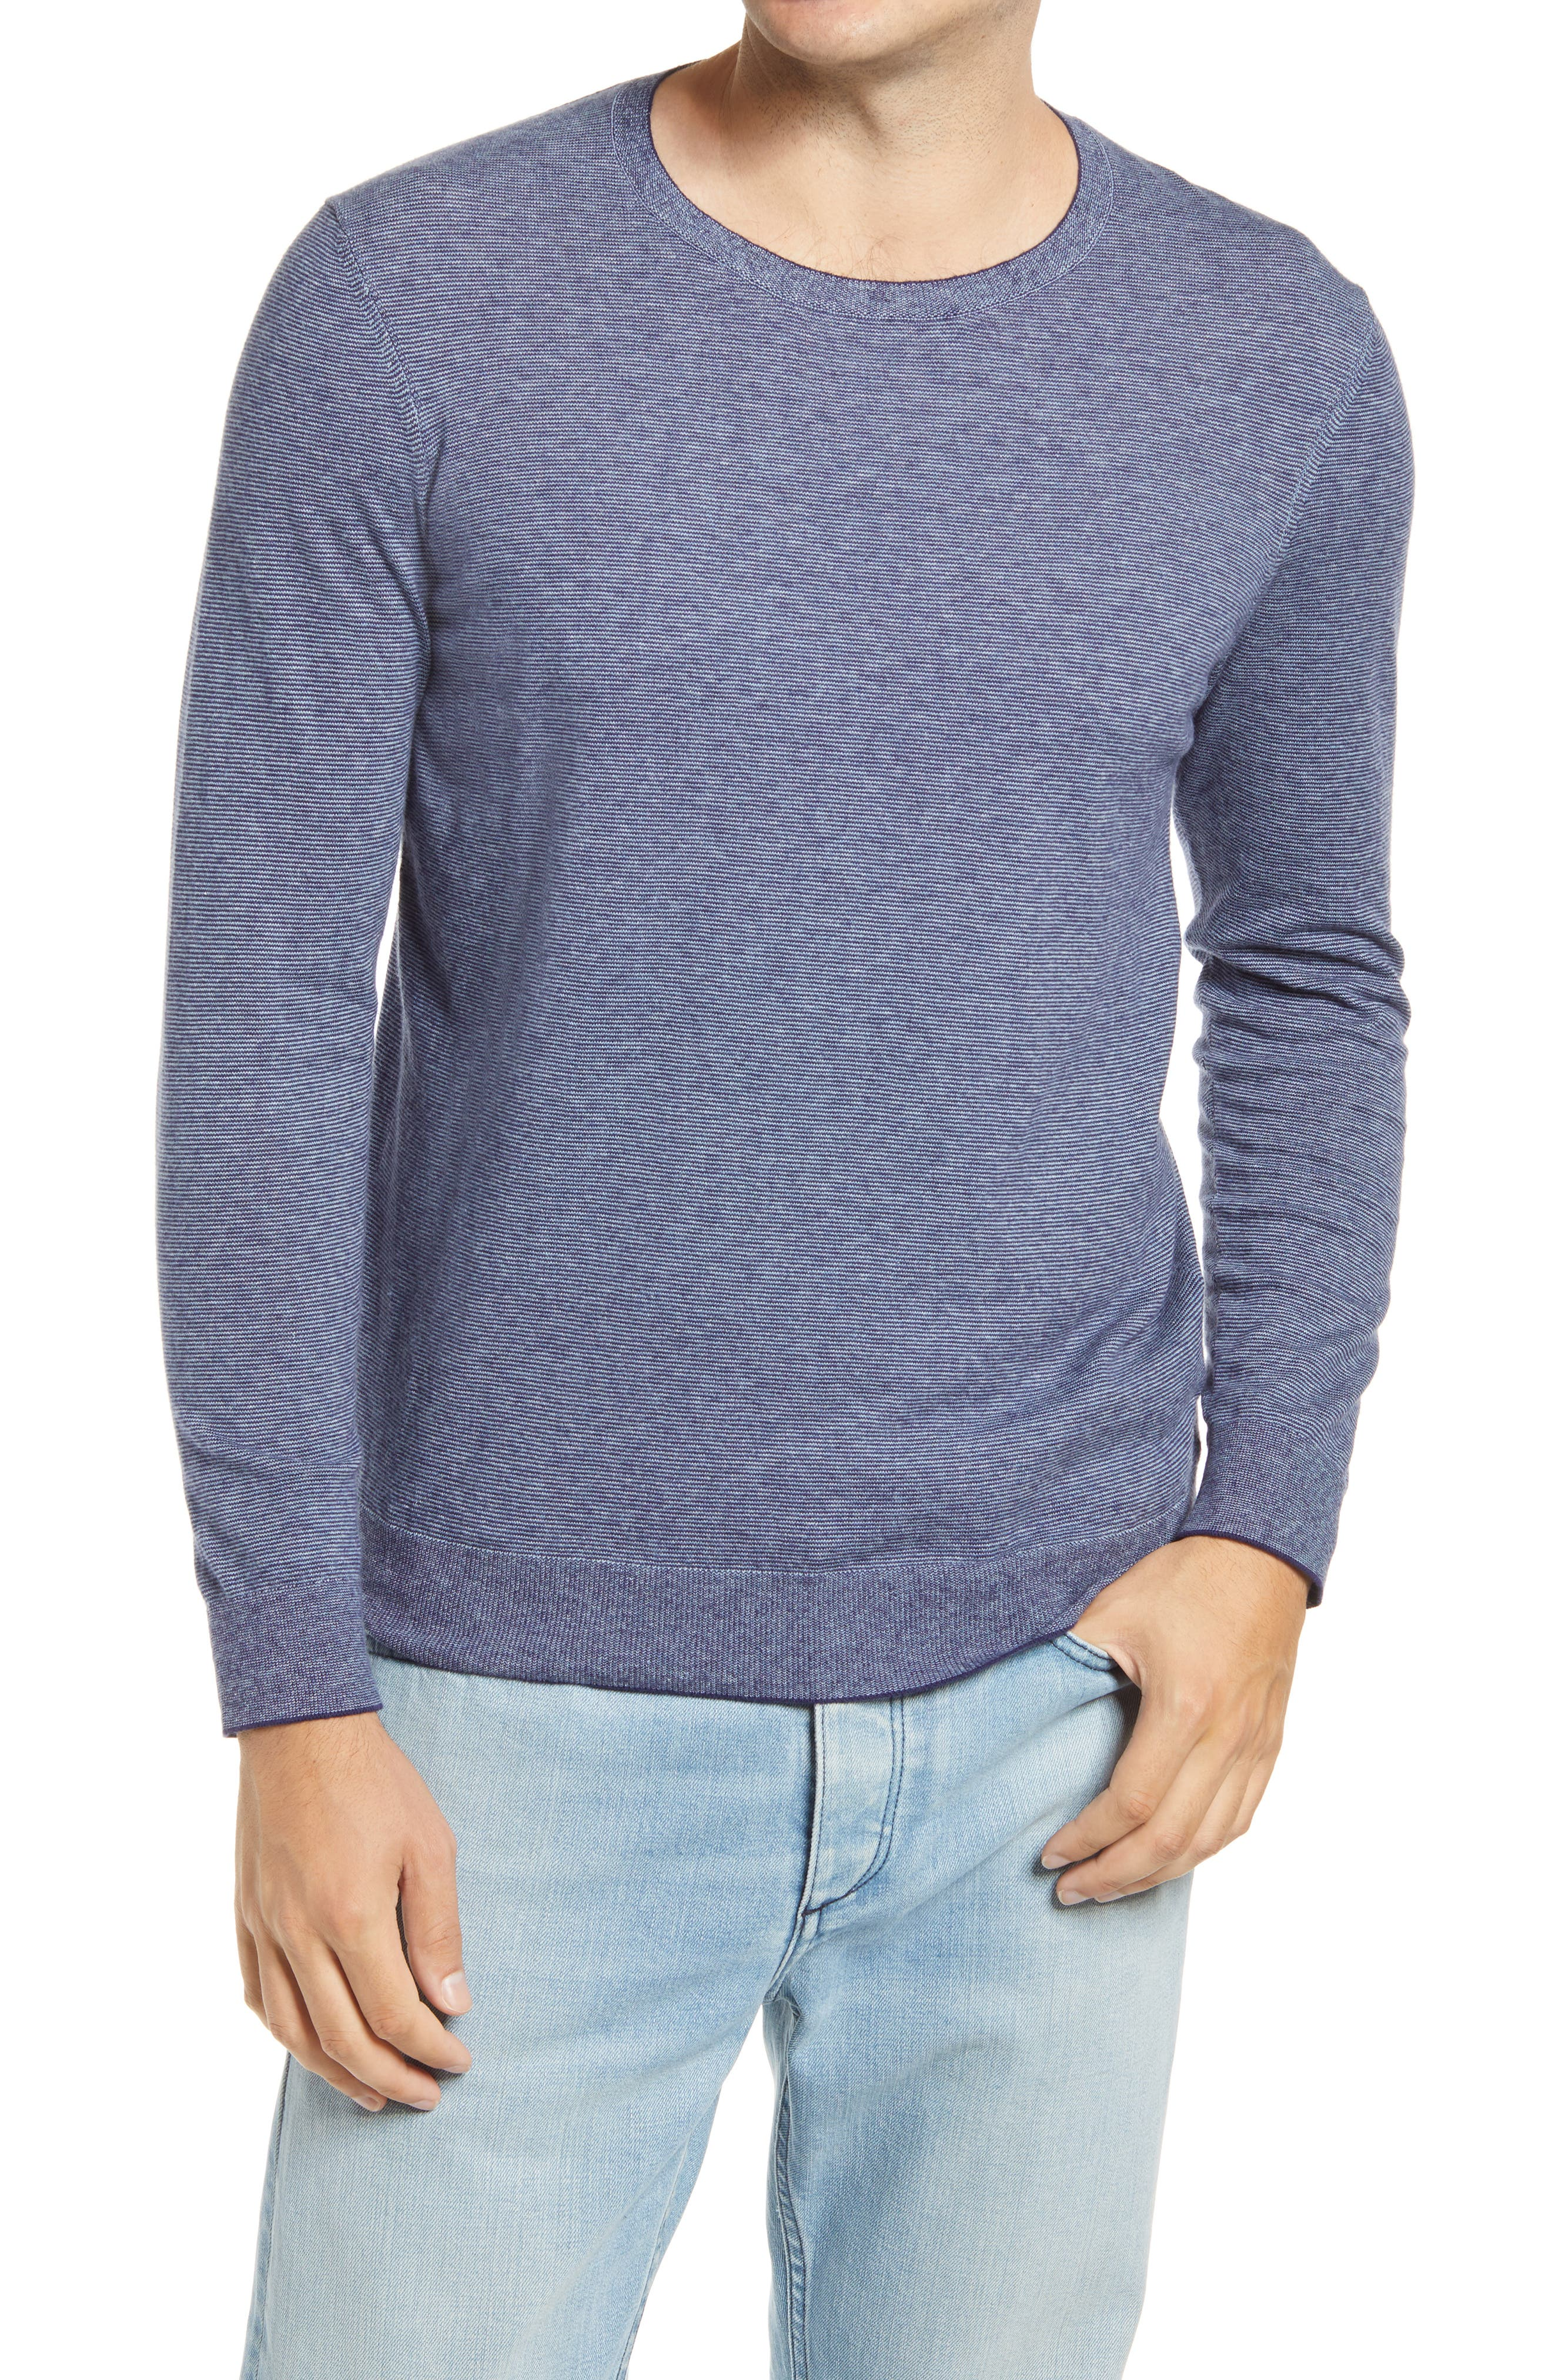 Thin stripes texture this light and layer-ready sweater that\\\'s knit from a soft blend of cotton and certified sustainable fibers. Style Name: Bonobos Lightweight Stripe Sweater. Style Number: 5986935. Available in stores.